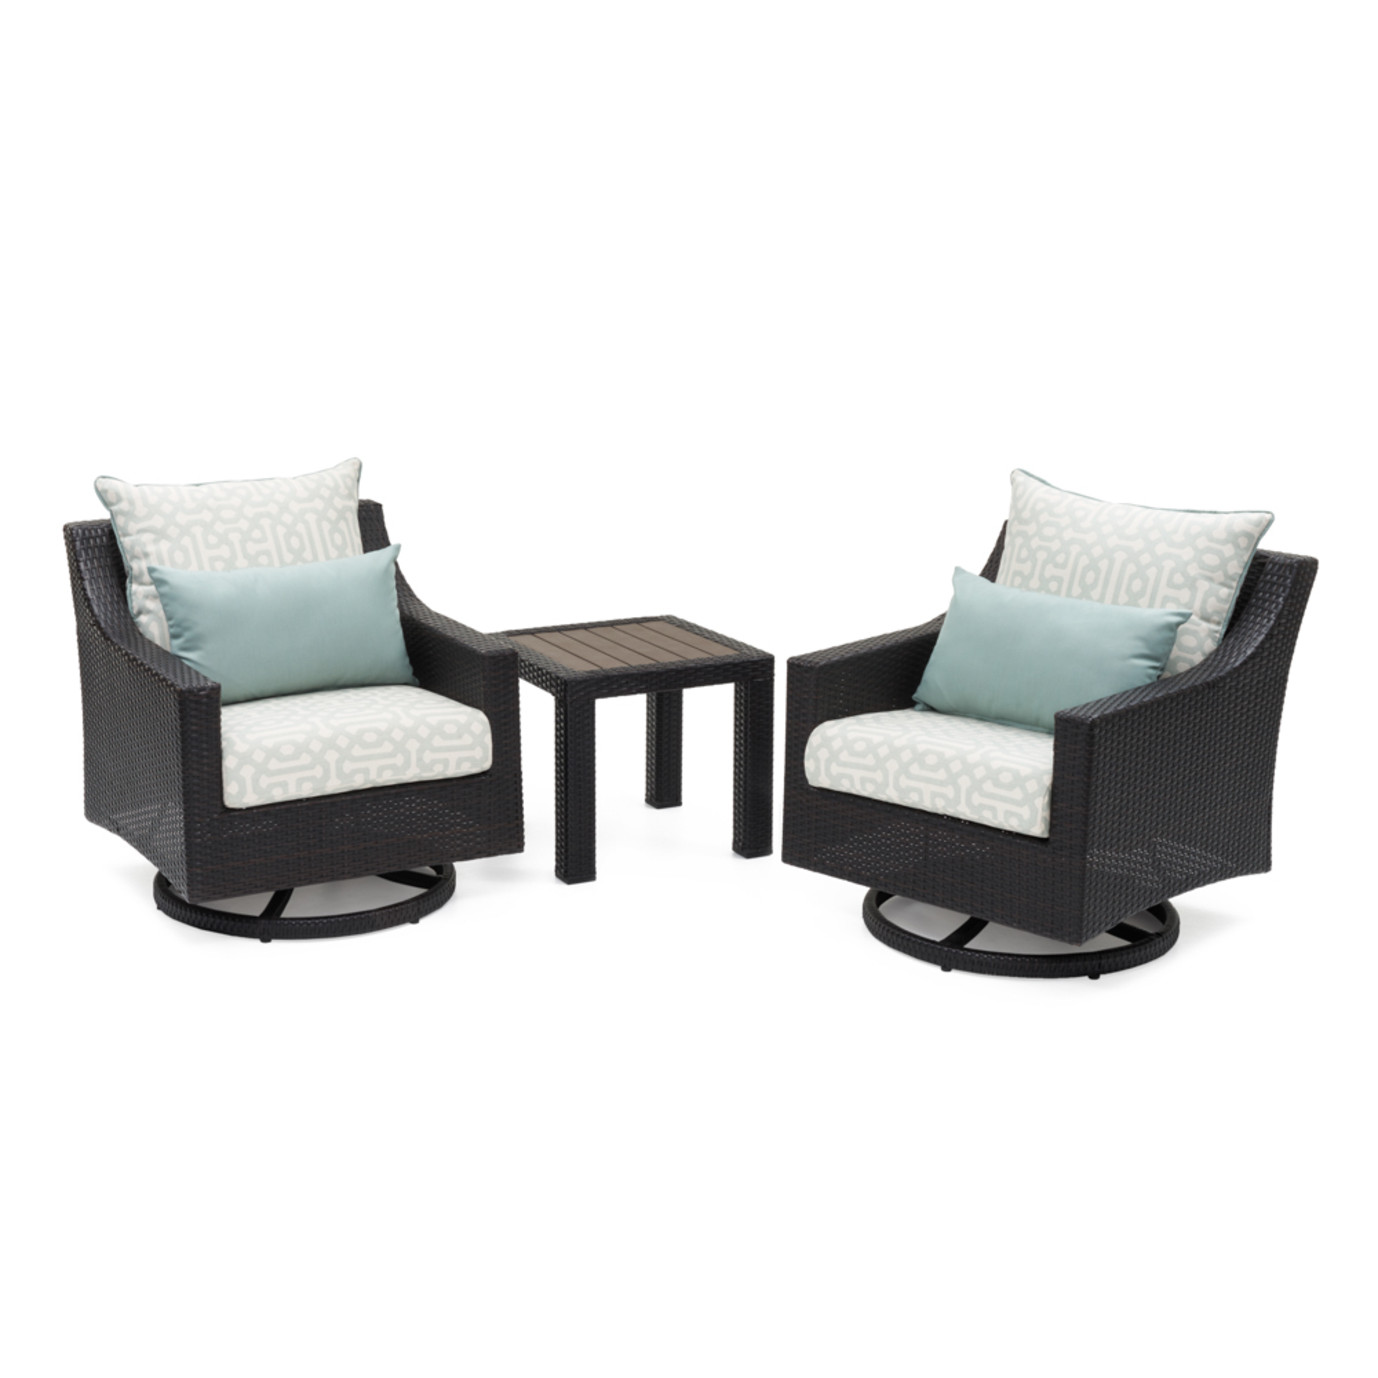 Deco™ Deluxe Motion Club Chairs & Side Table - Spa Blue